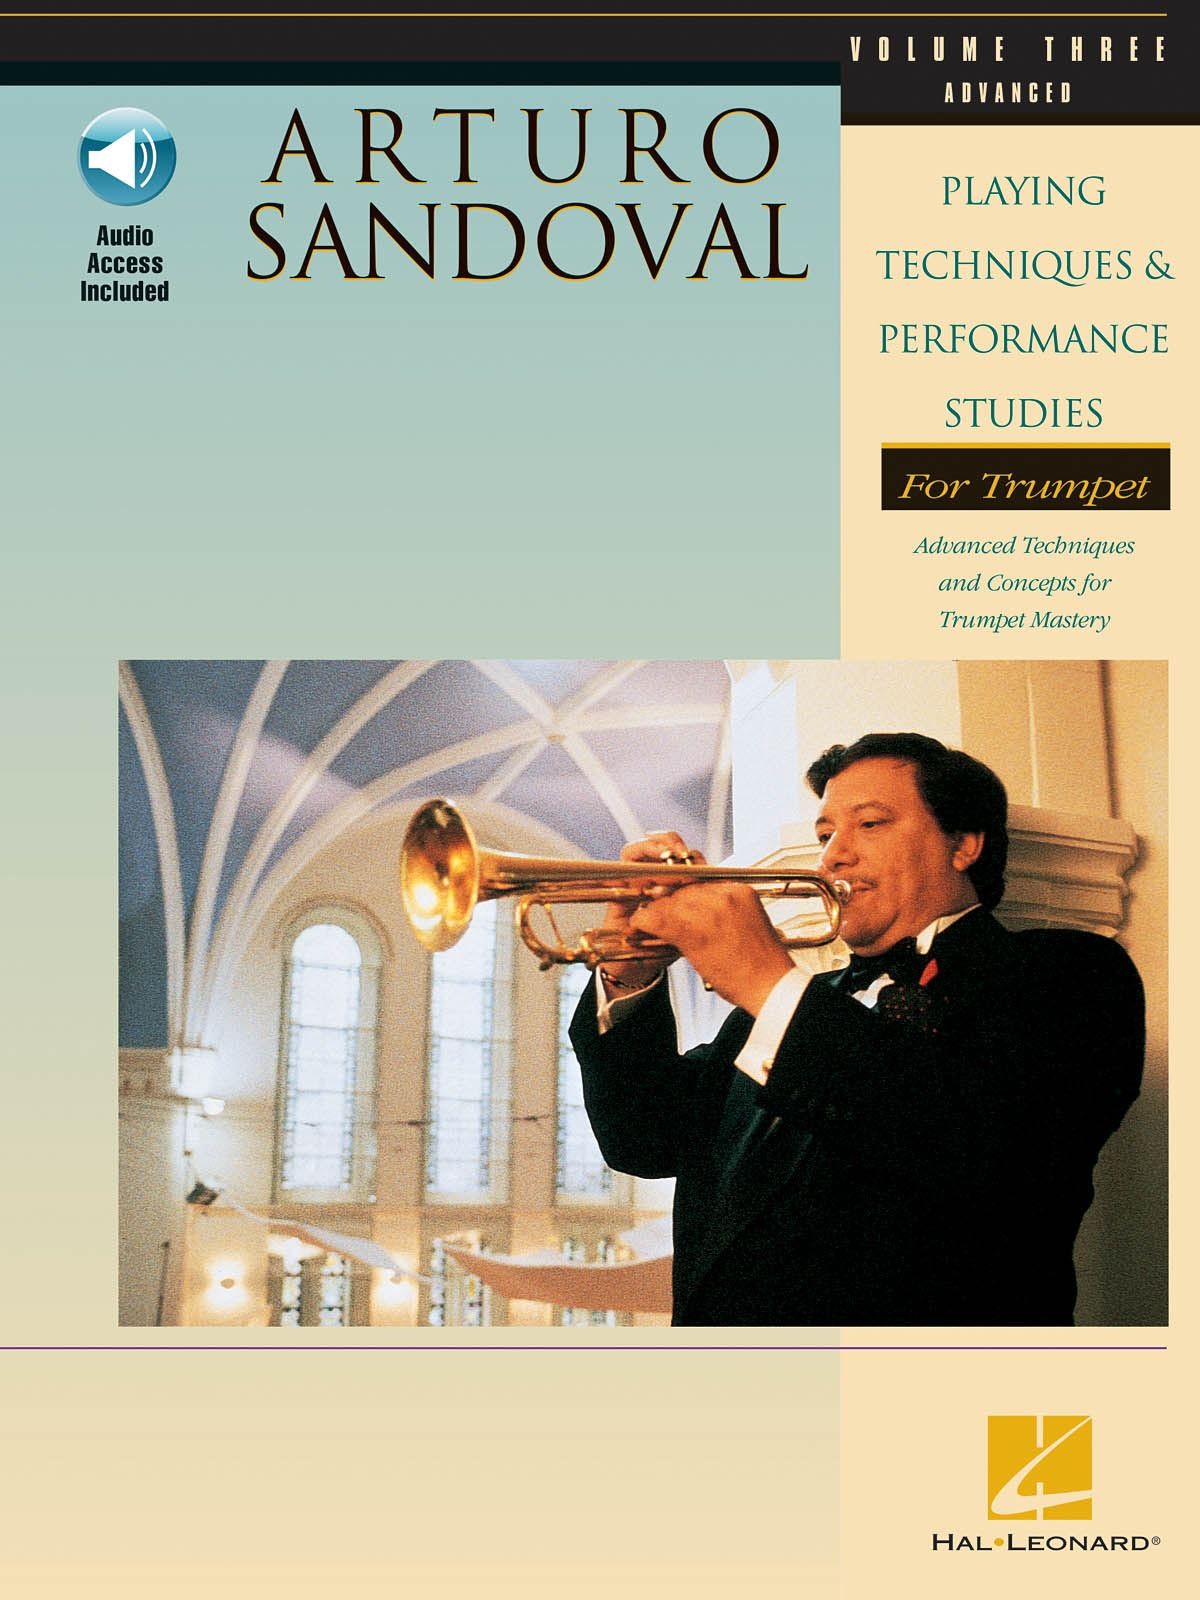 Arturo Sandoval: Playing Techniques & Performance Studies Vol. 3: Trumpet Solo: